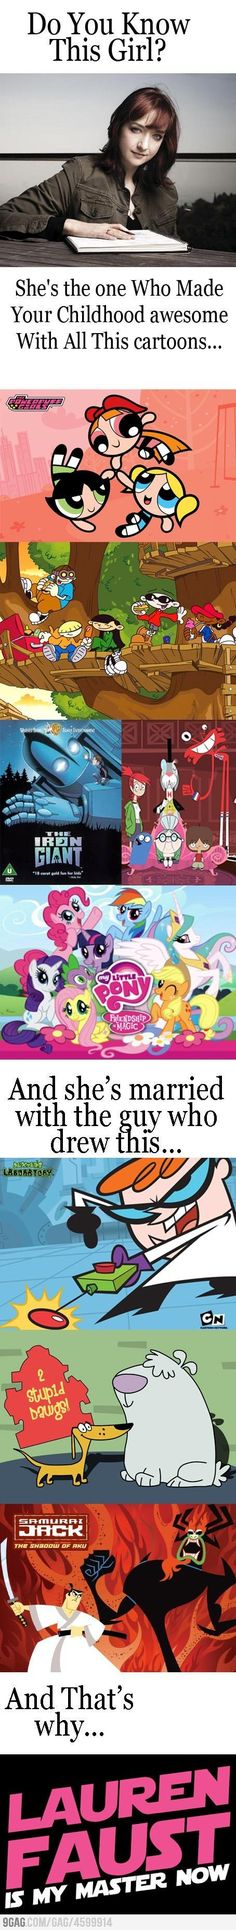 Lauren Faust, some of these were my favorites! I also feel it should say these*...